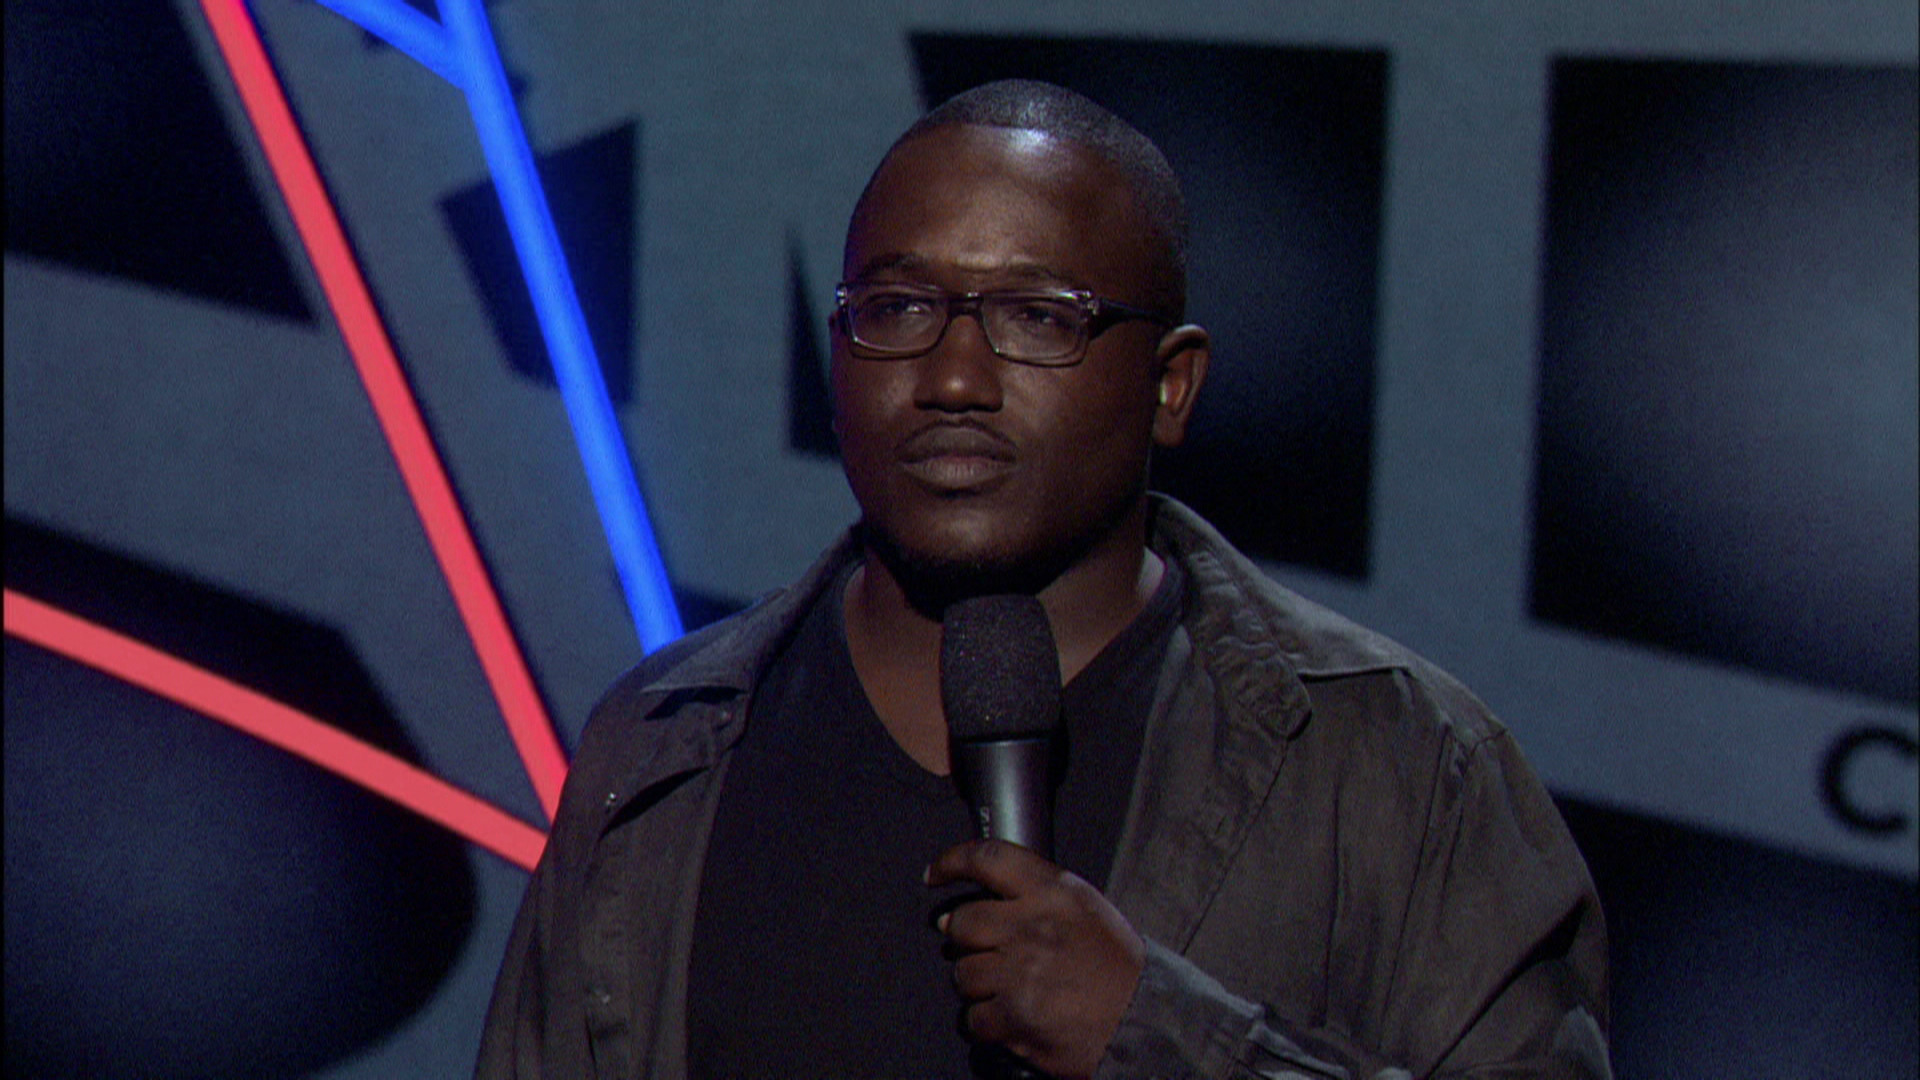 Jared Logan, Adam Newman, Emily Heller, Hannibal Buress